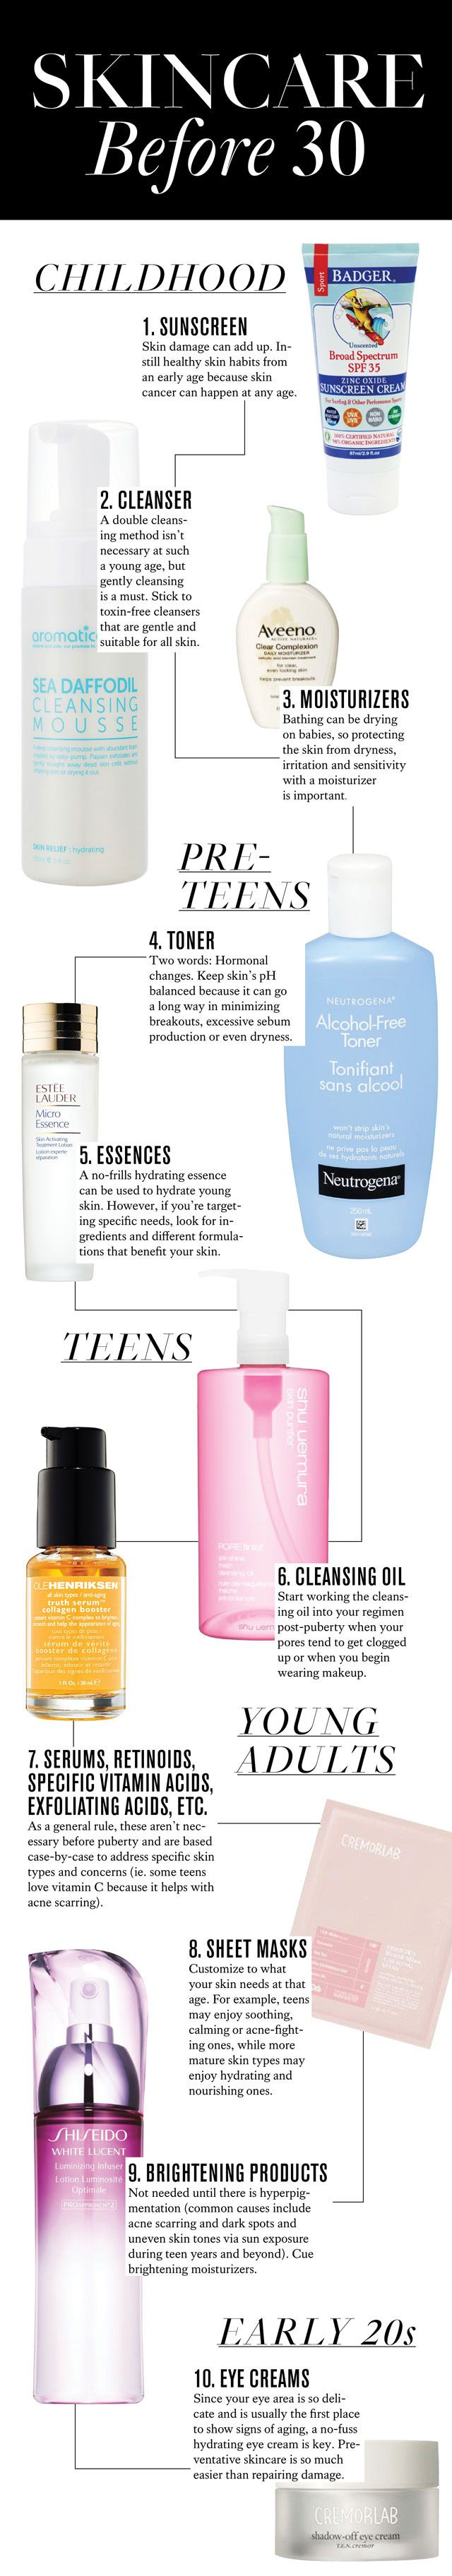 A step-by-step guide to the #skincare regimen to consider abiding by as you get older #infograph